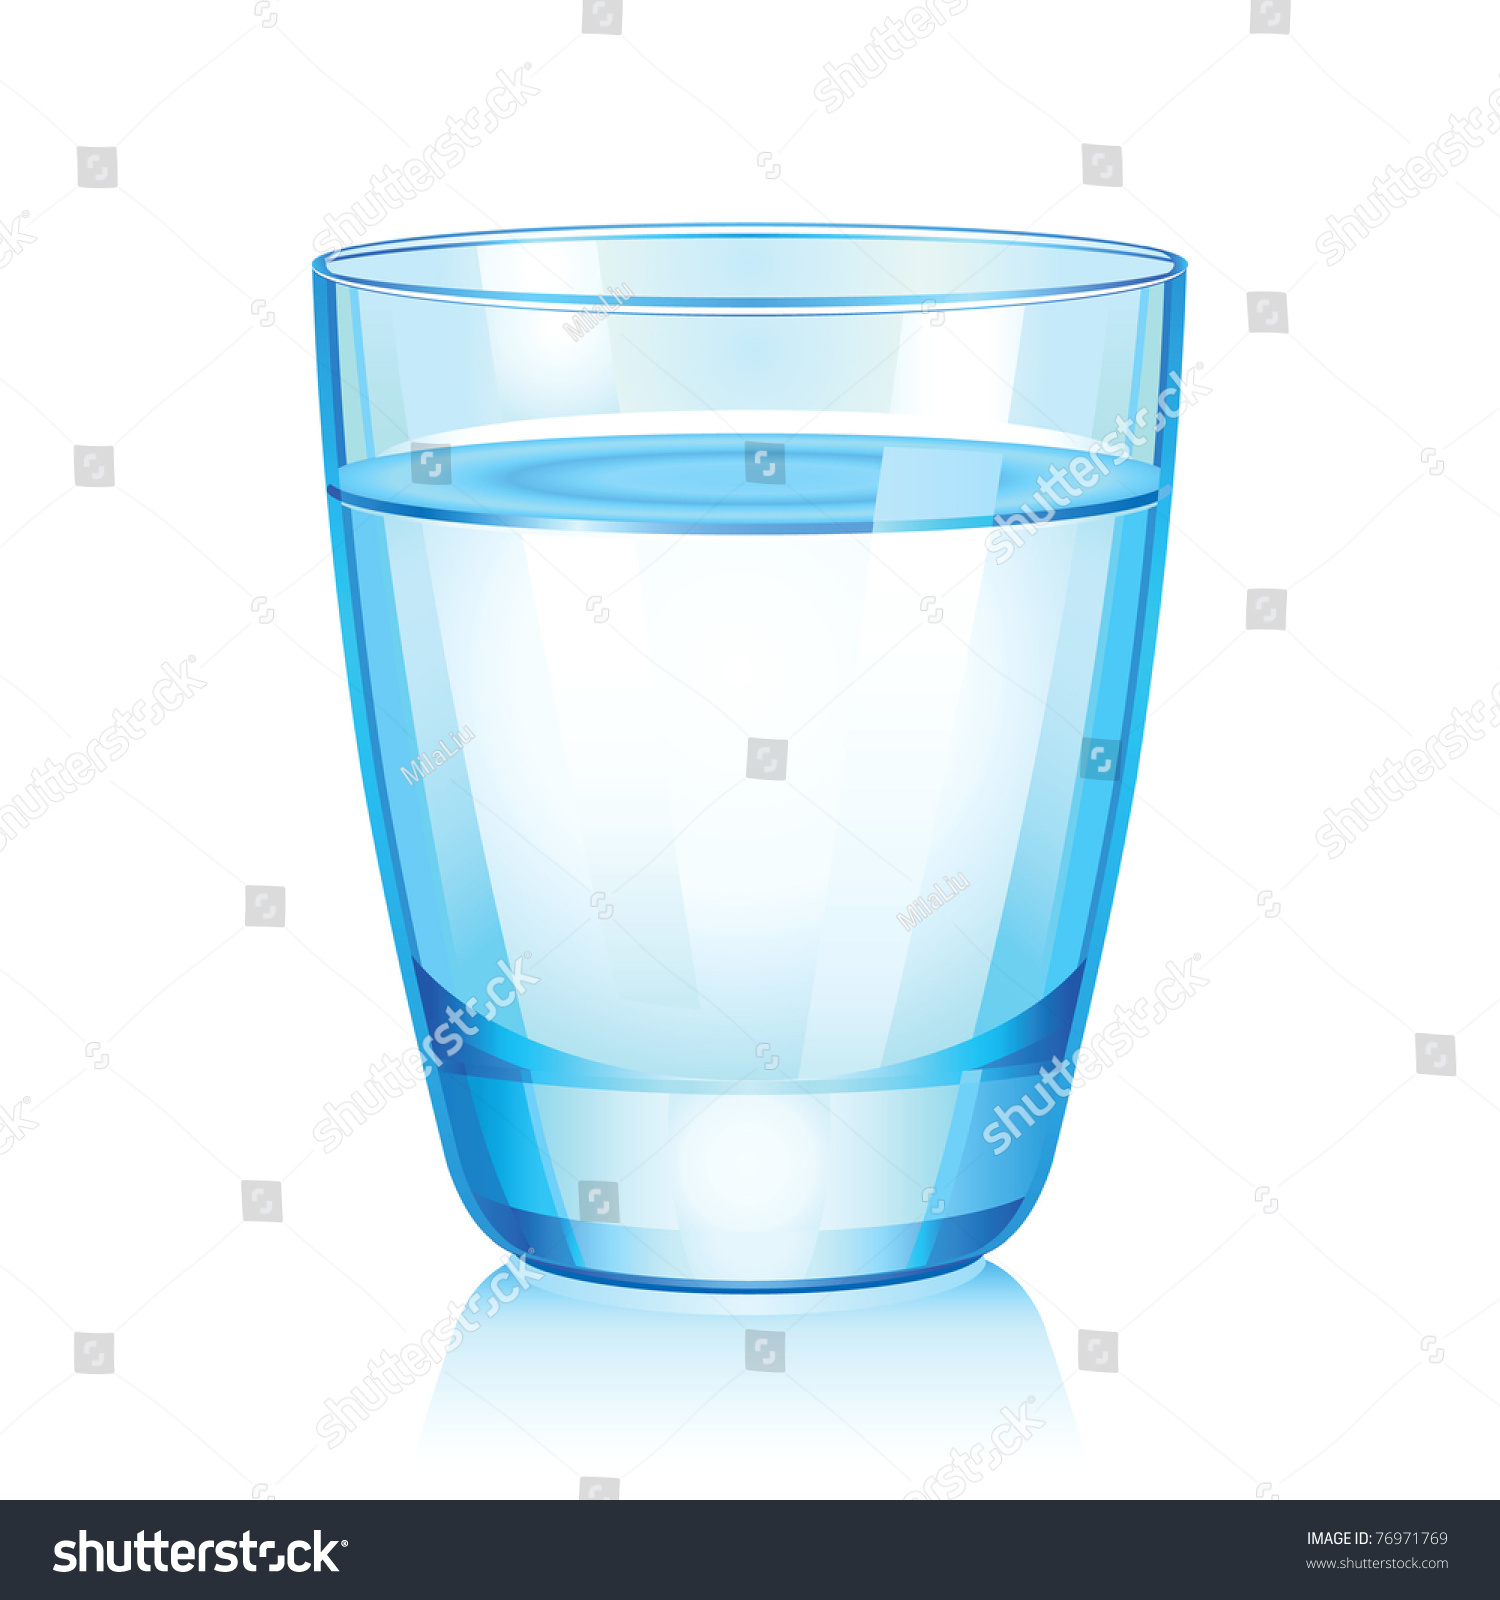 Vector illustration short glass water stock vector for Water glass images